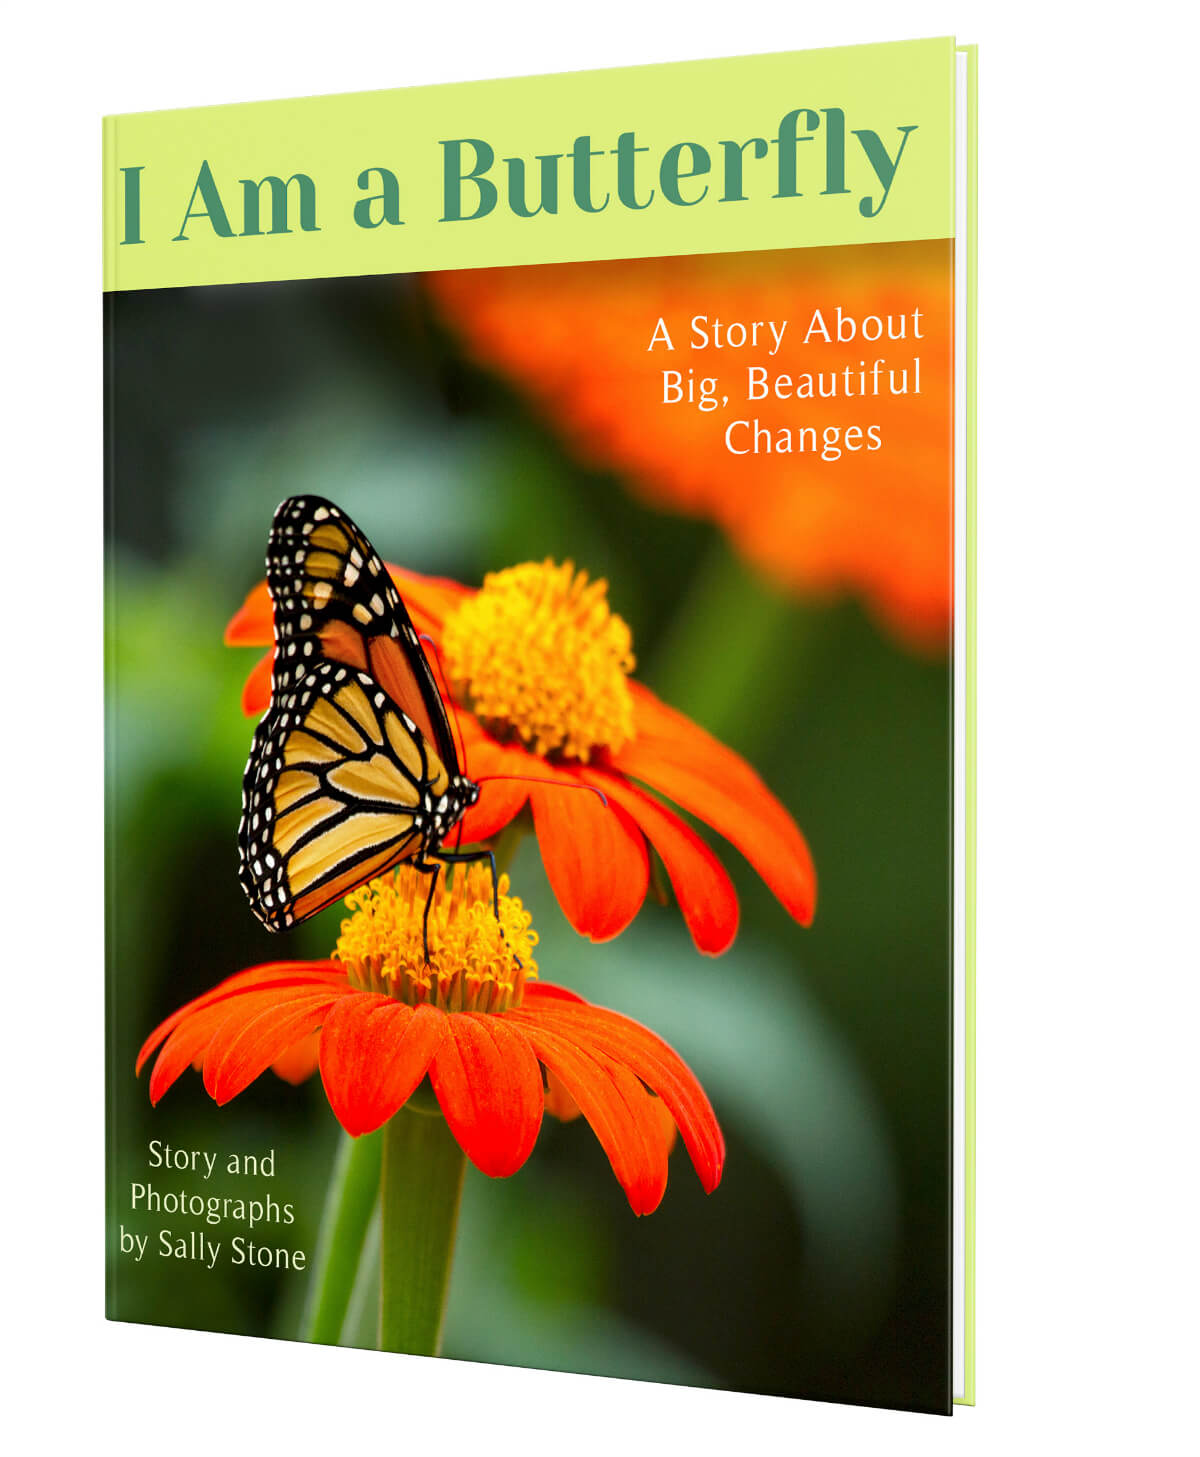 I-Am-a-Butterfly:-A-Story-About-Big-Beautiful-Changes-children's-book